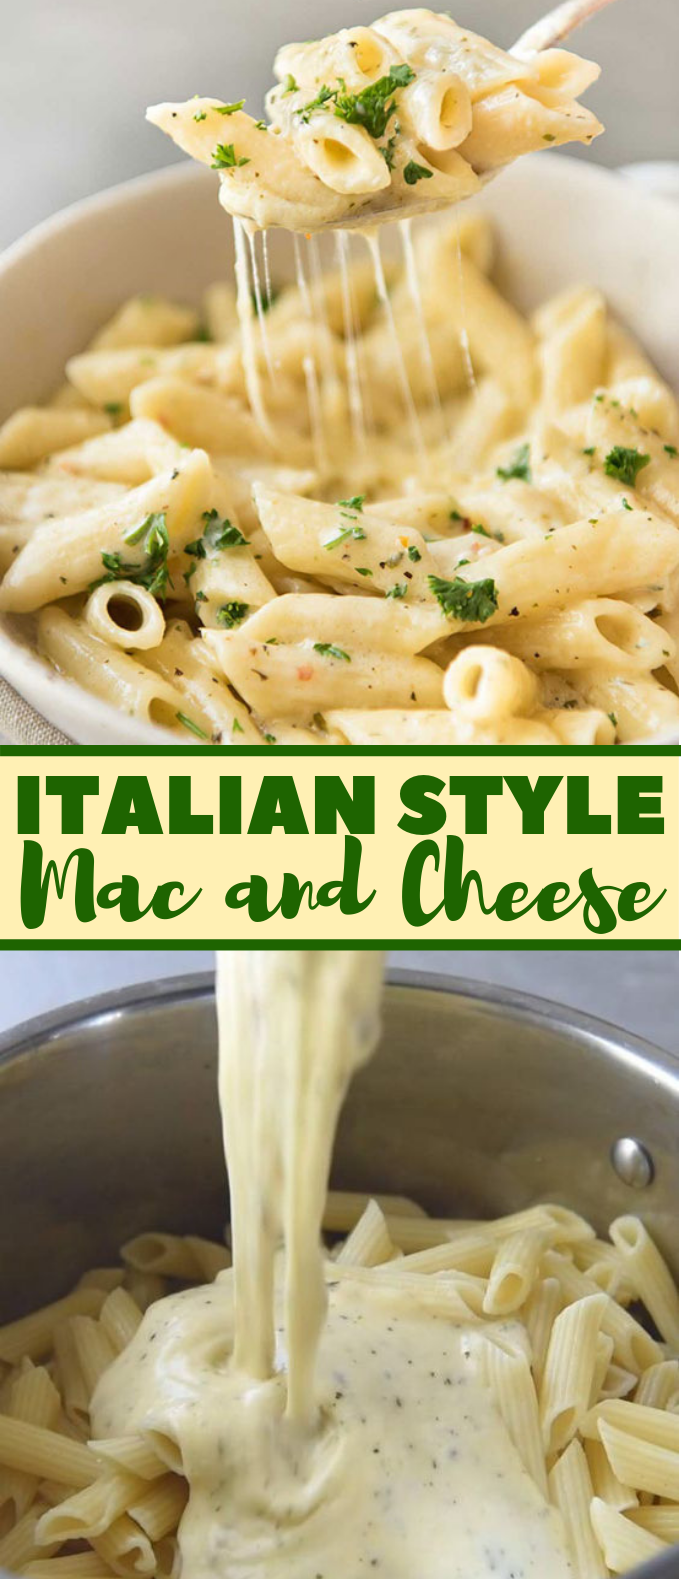 Super Simple Mac and Cheese Italian Style #dinner #pasta